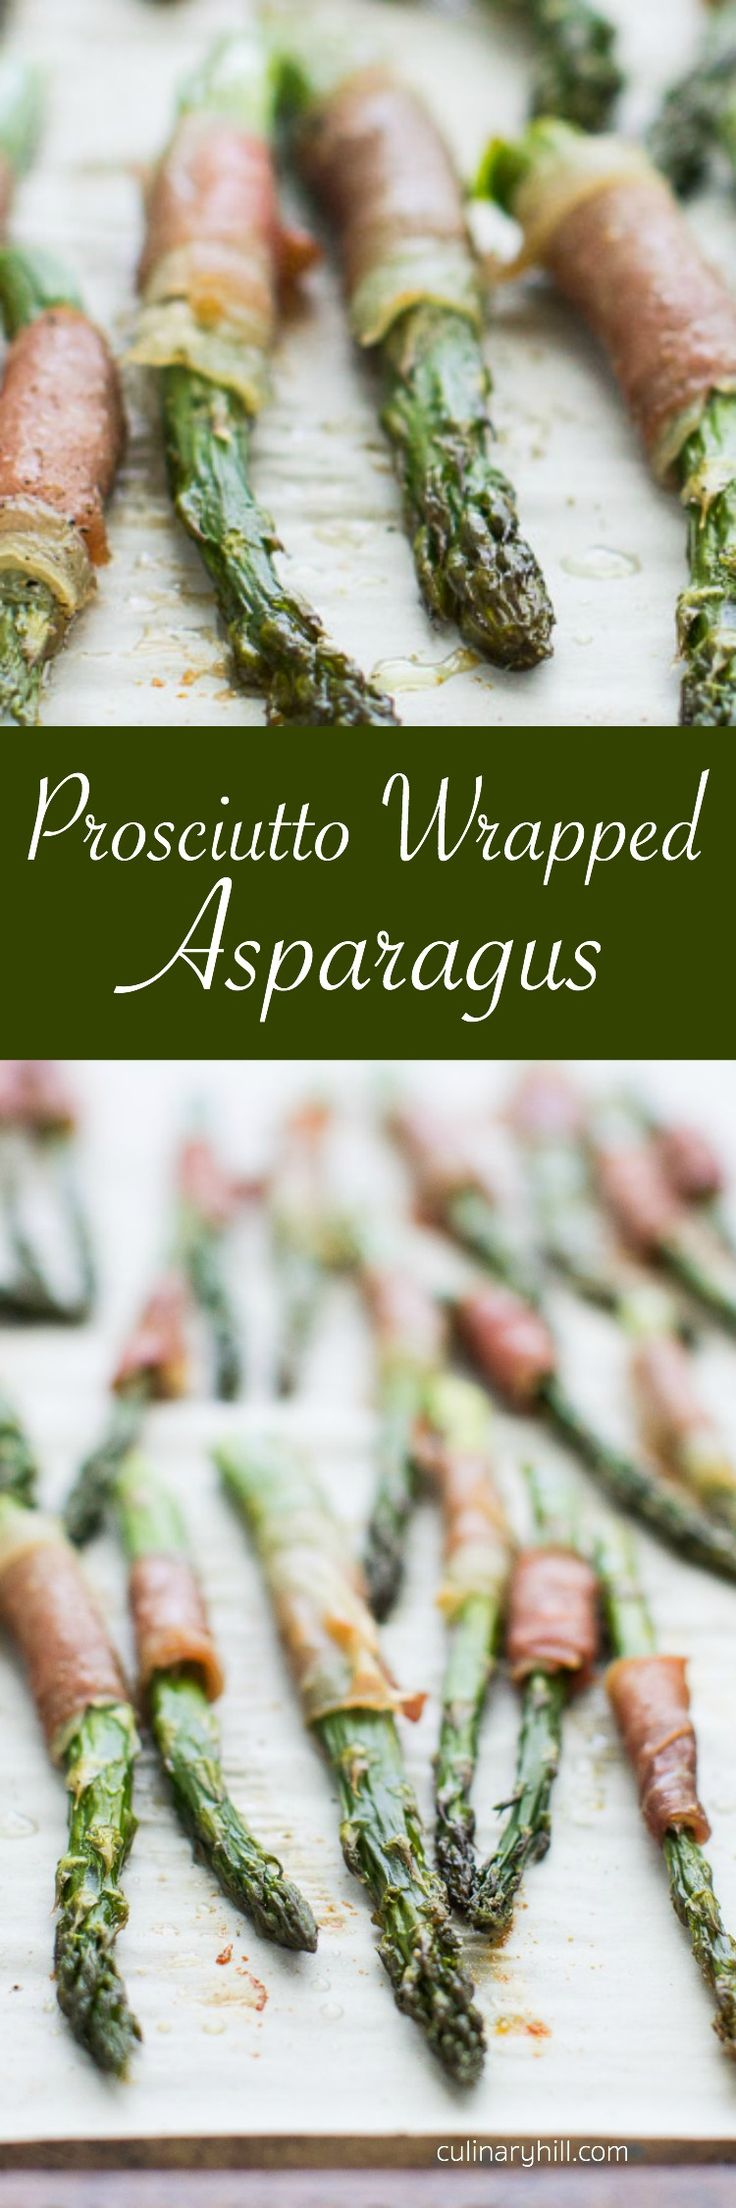 Prosciutto Wrapped Asparagus makes a fun and tasty appetizer or an elegant first course! Bakes up to salty, chewy perfection in 20 minutes.